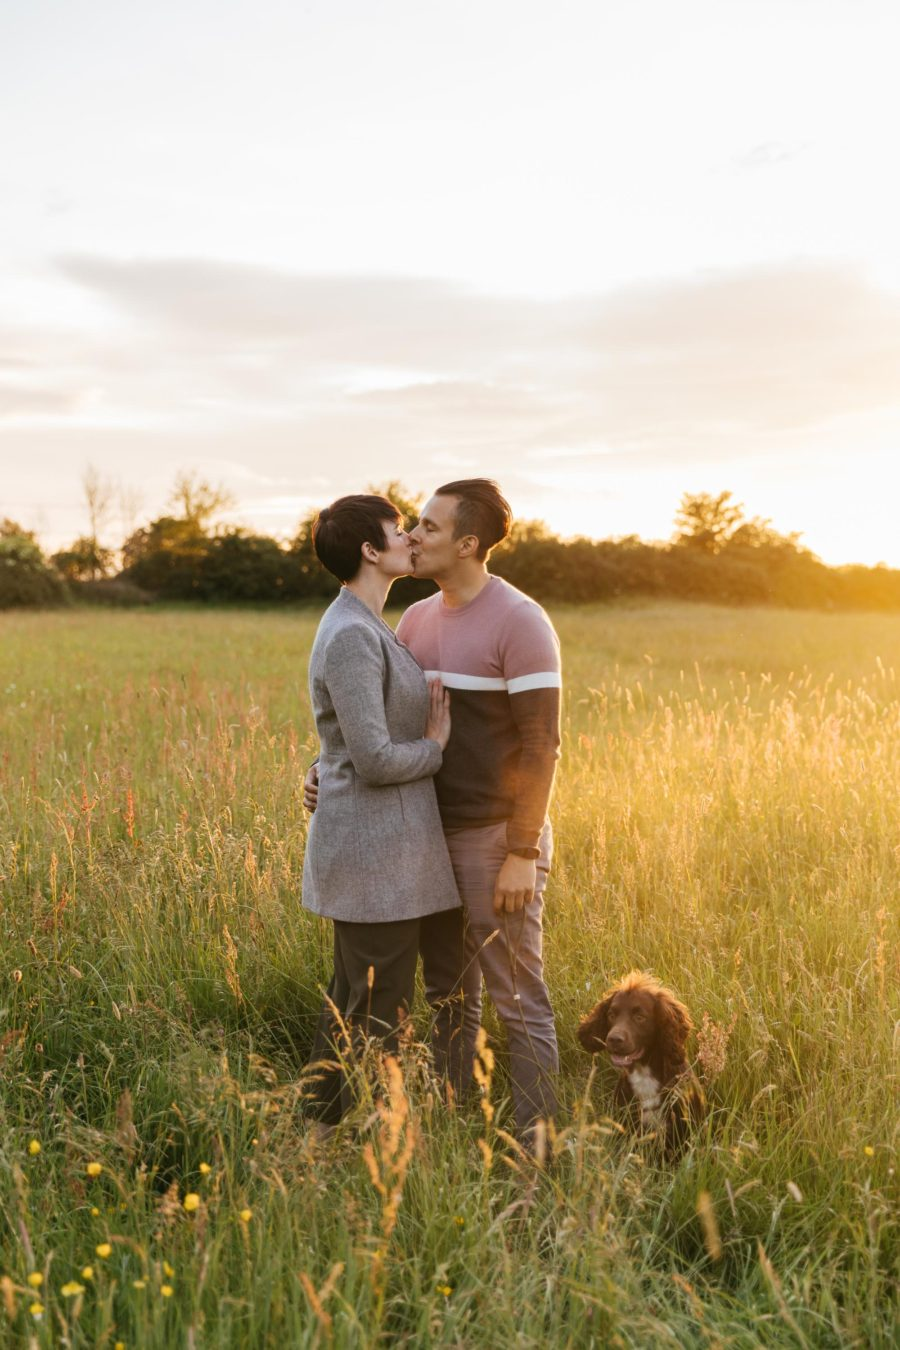 Stacey & Hassan's Sunset Engagement Photos – Cotswold Engagement Photography